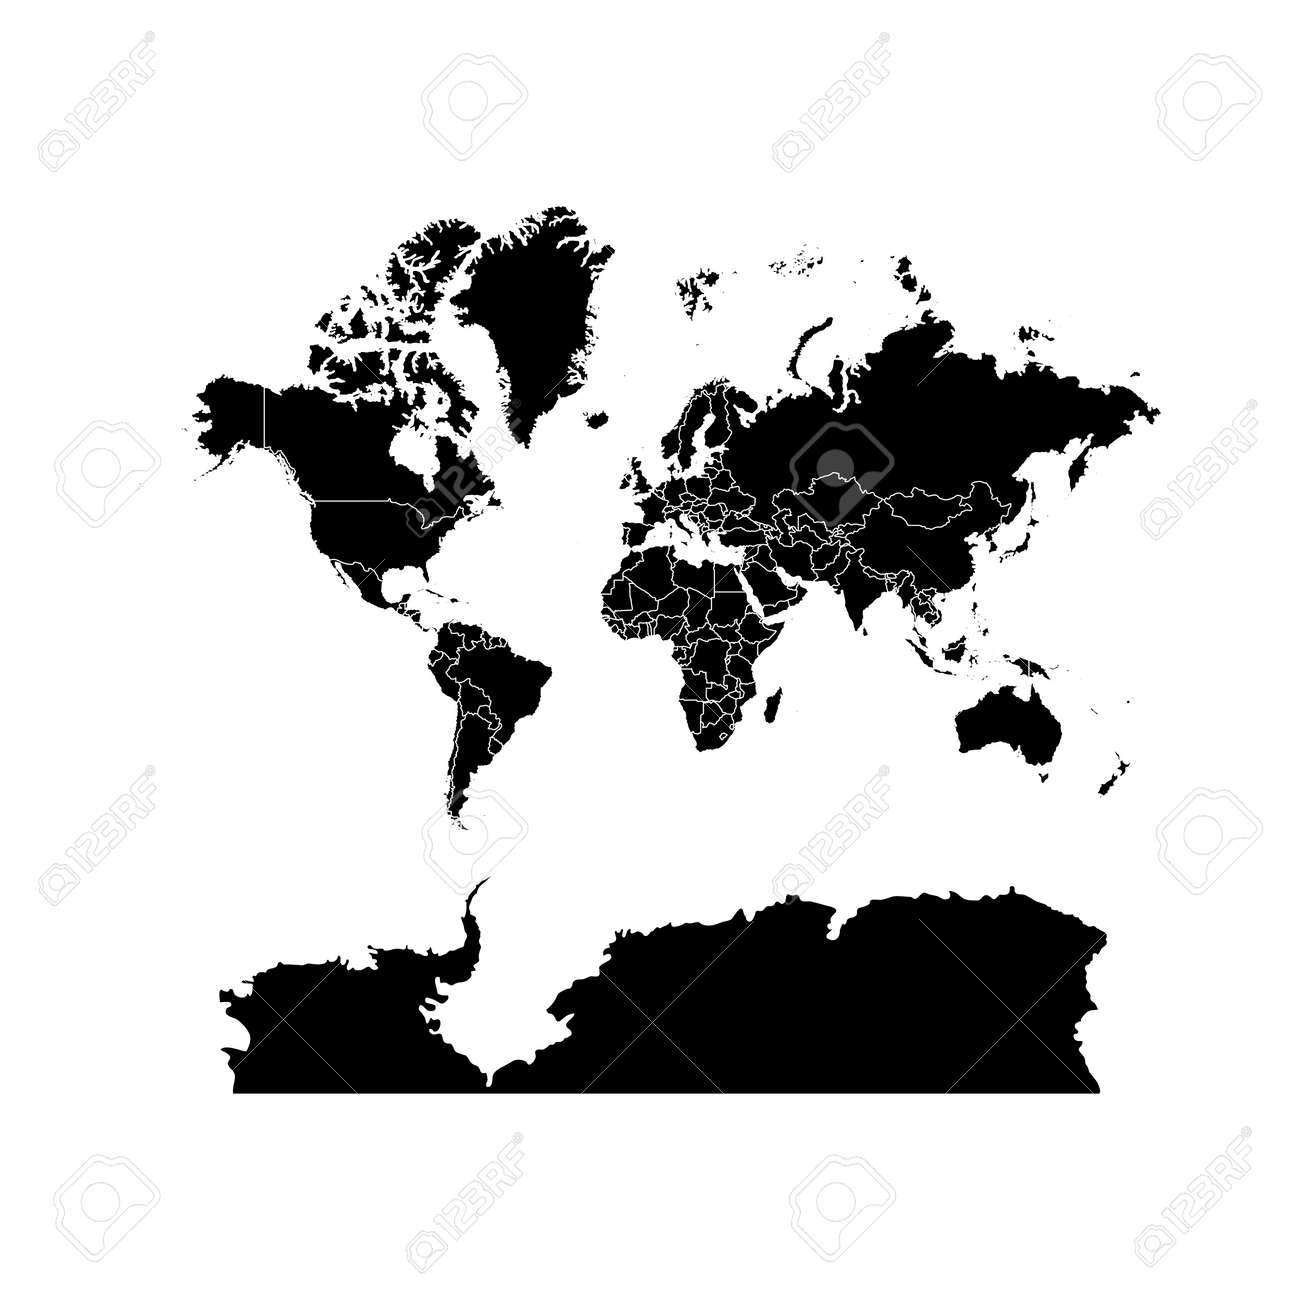 Black world map political isolated on white background worldmap black world map political isolated on white background worldmap vector template flat world gumiabroncs Image collections